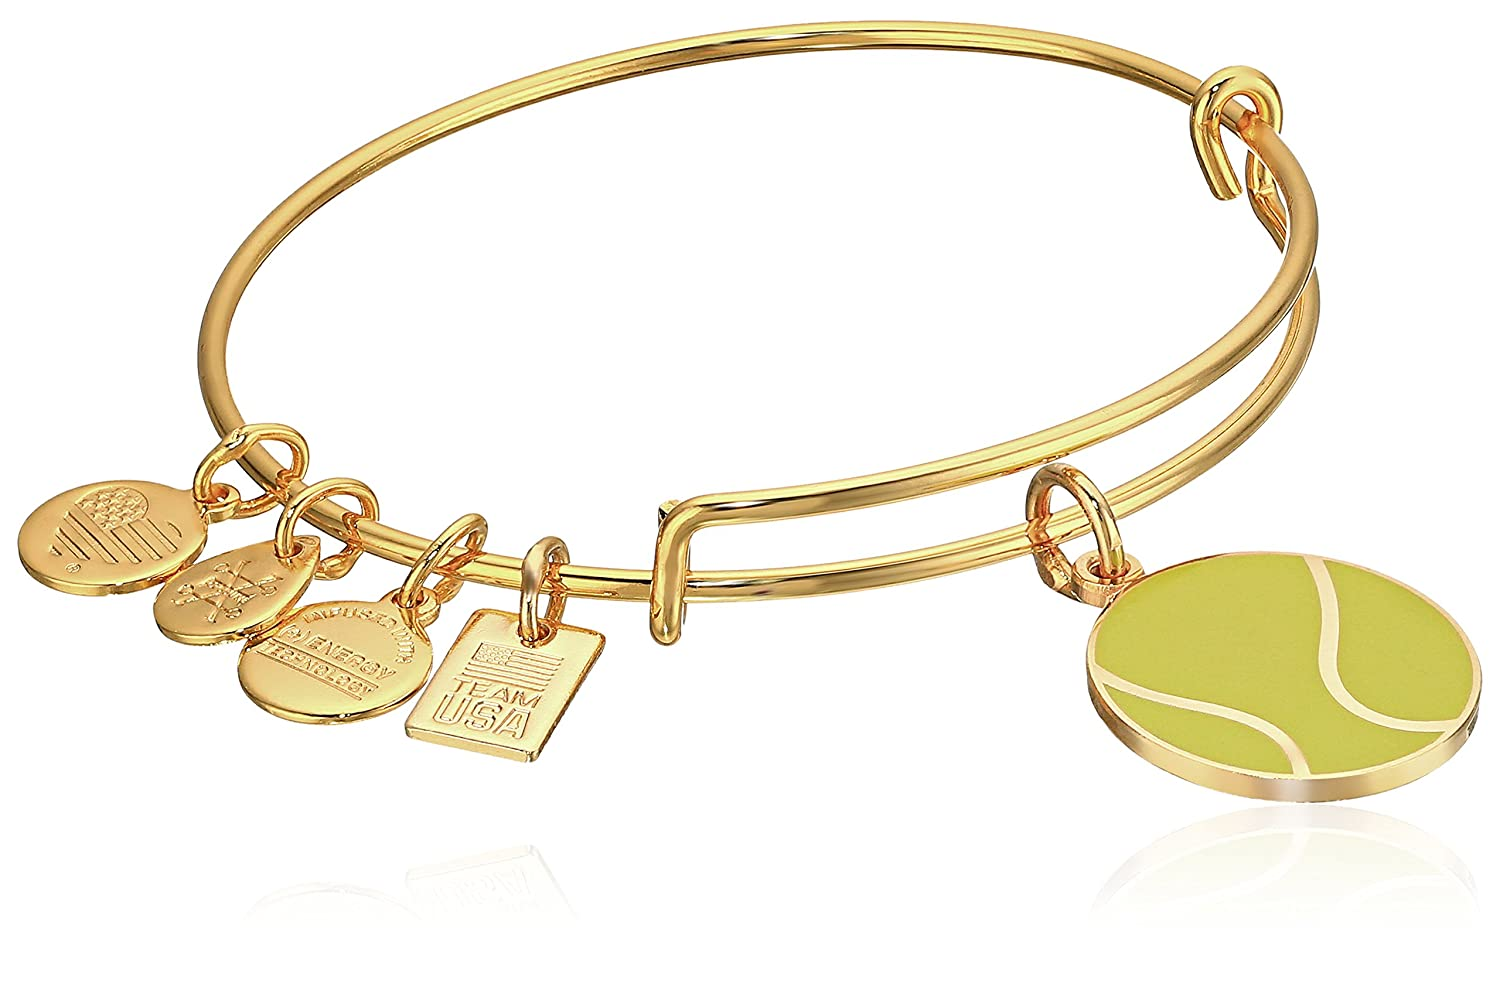 on andy set pinterest glamorous bangle appealing idea ireland amazing infinity best bracelet ani images charm alex love meaning and bracelets lovely